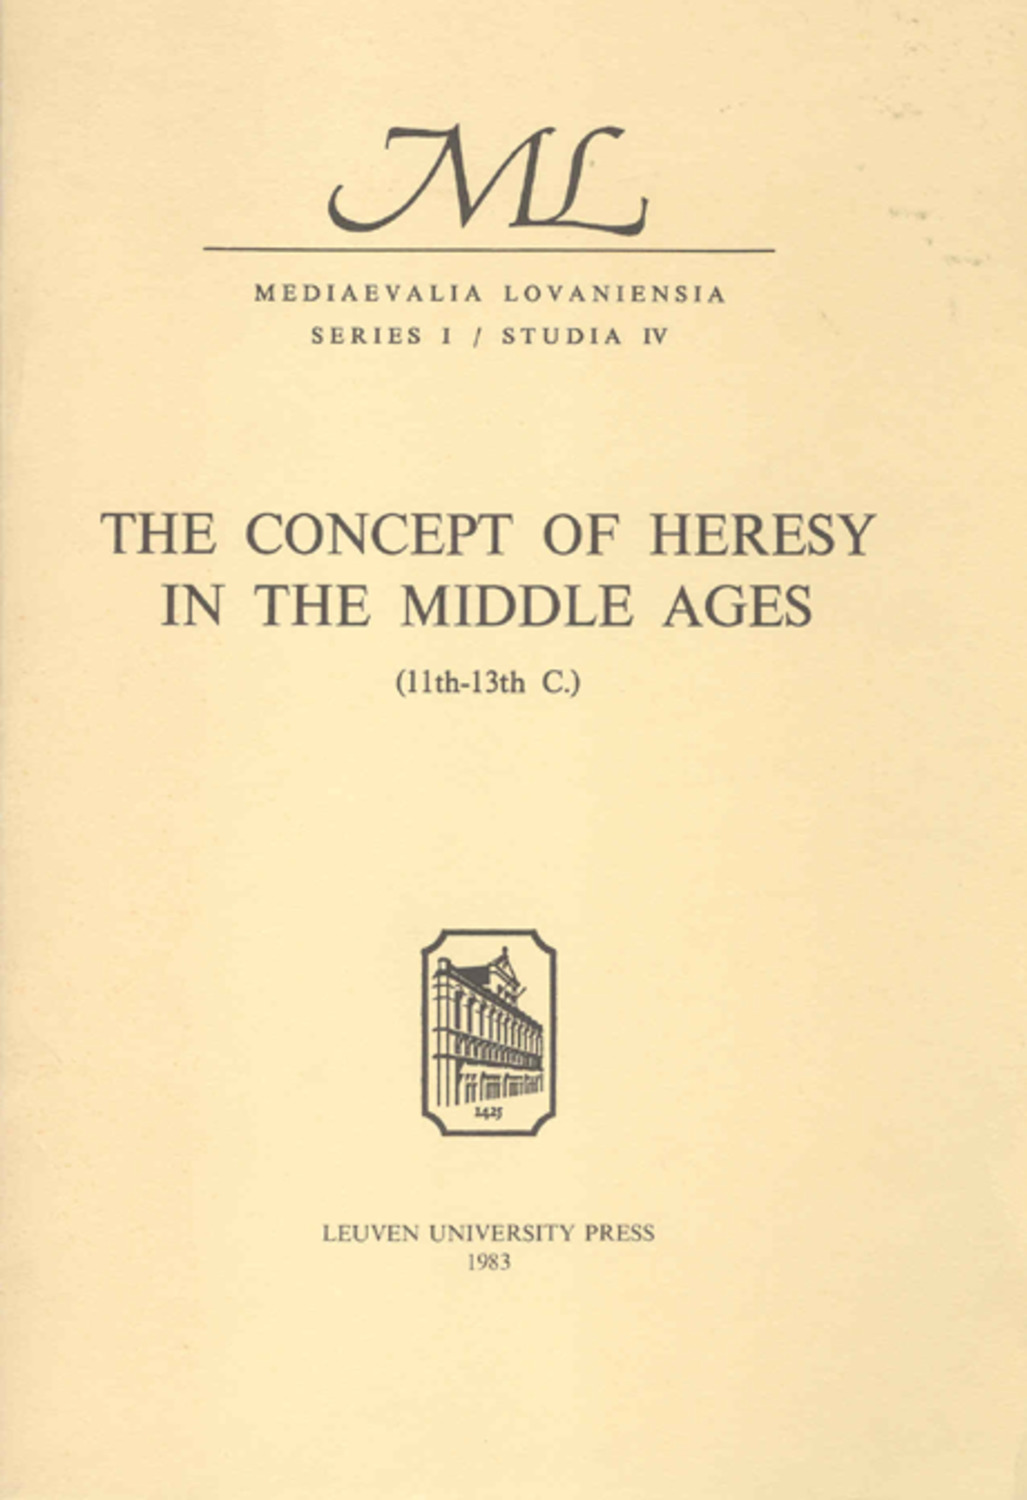 The Concept of Heresy in the Middle Ages (11th-13th C.)